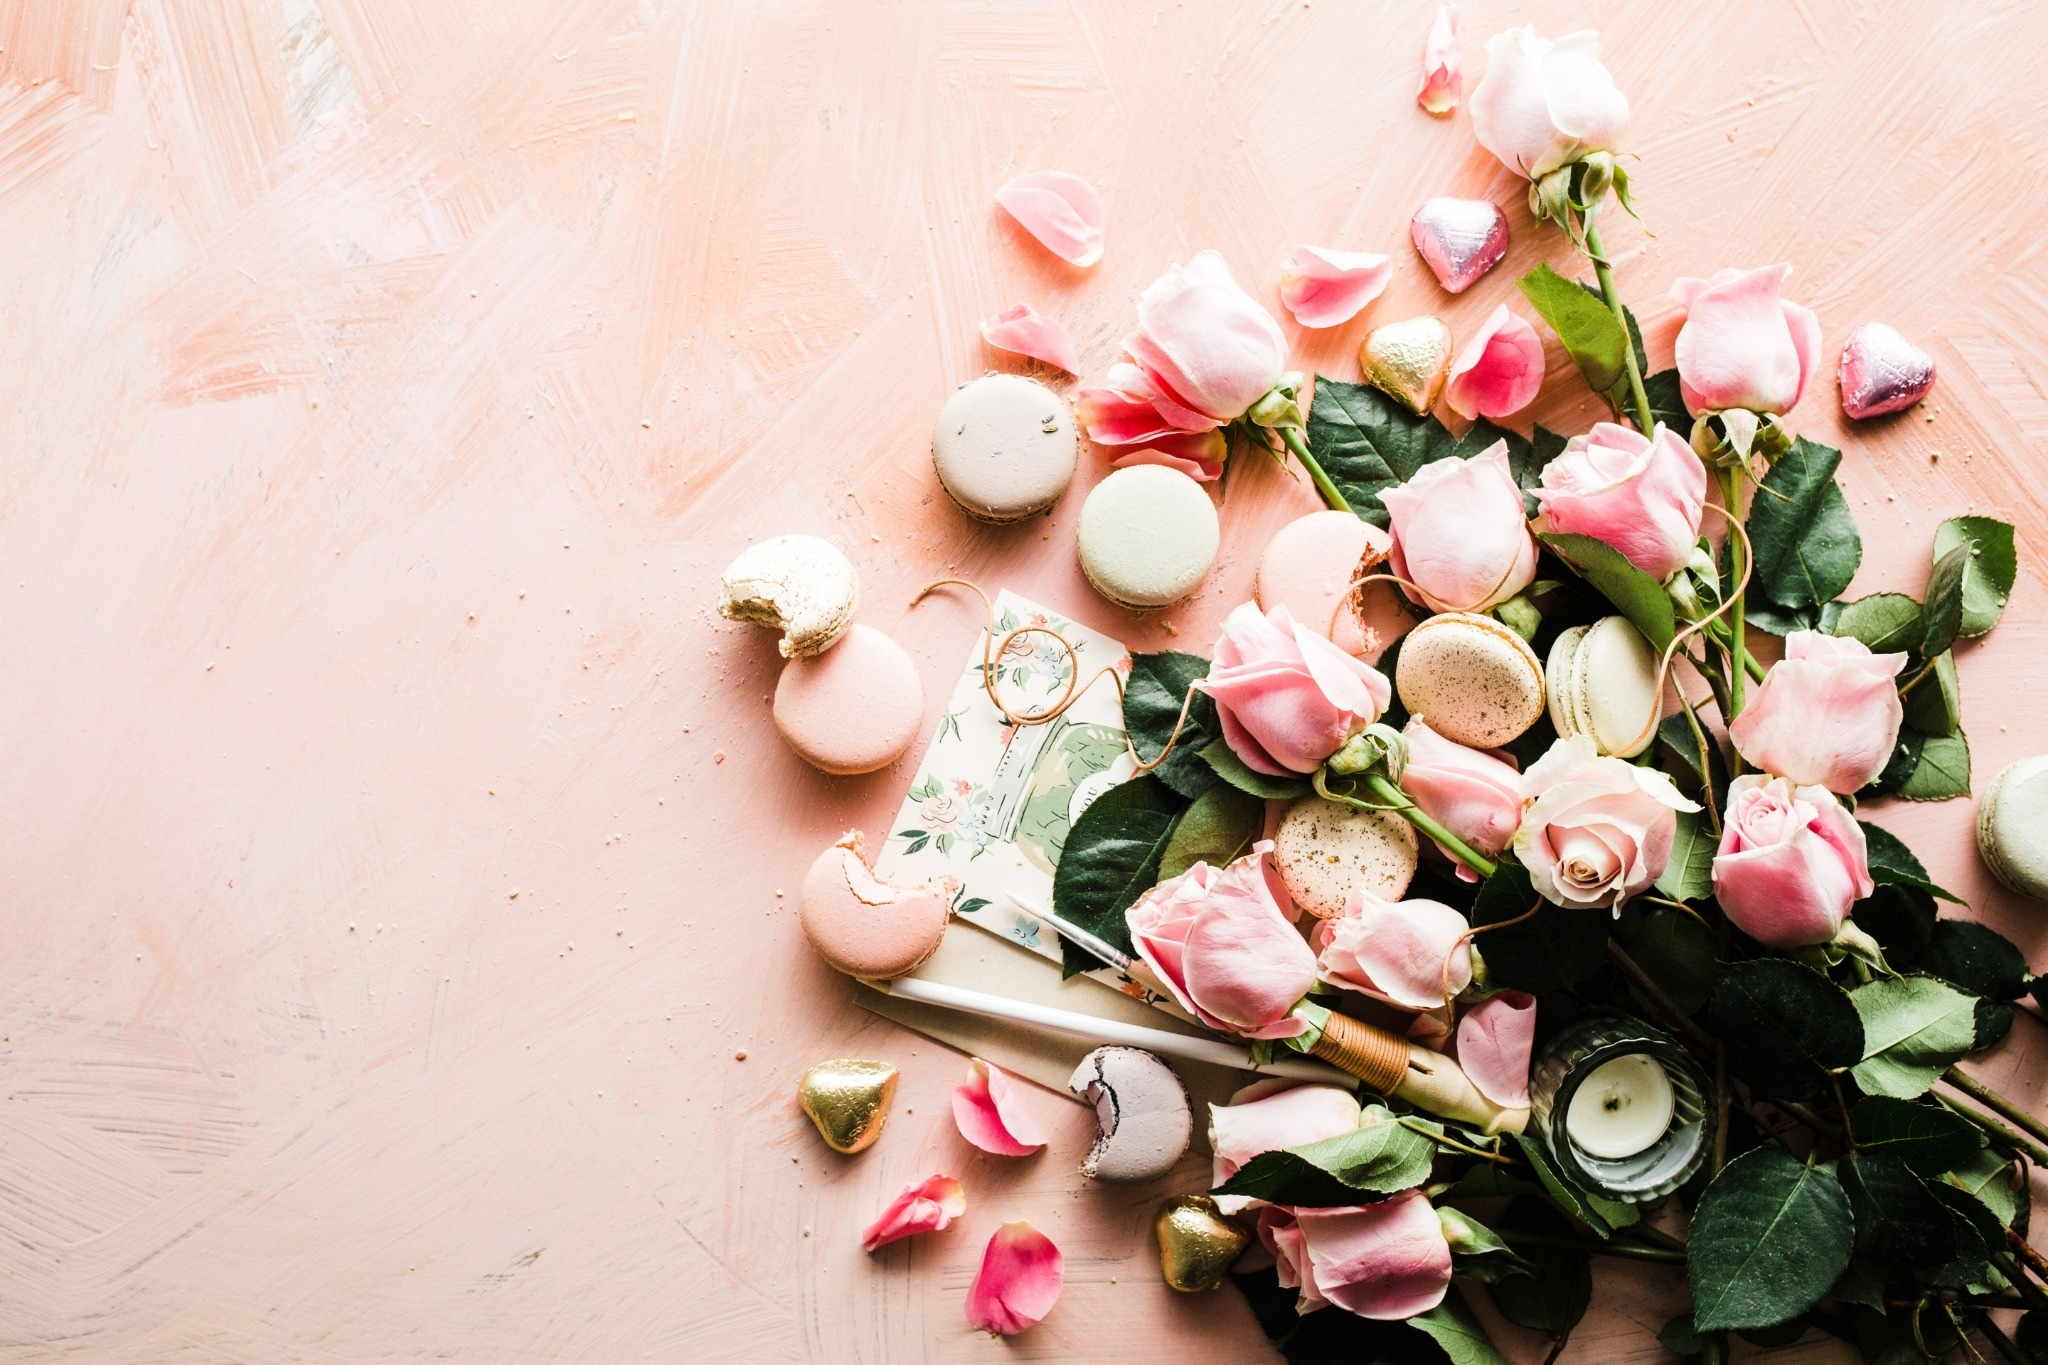 A Complete Guide to Valentine's Day Marketing: The Right Hashtags, Influencer Promotions & Promo Codes